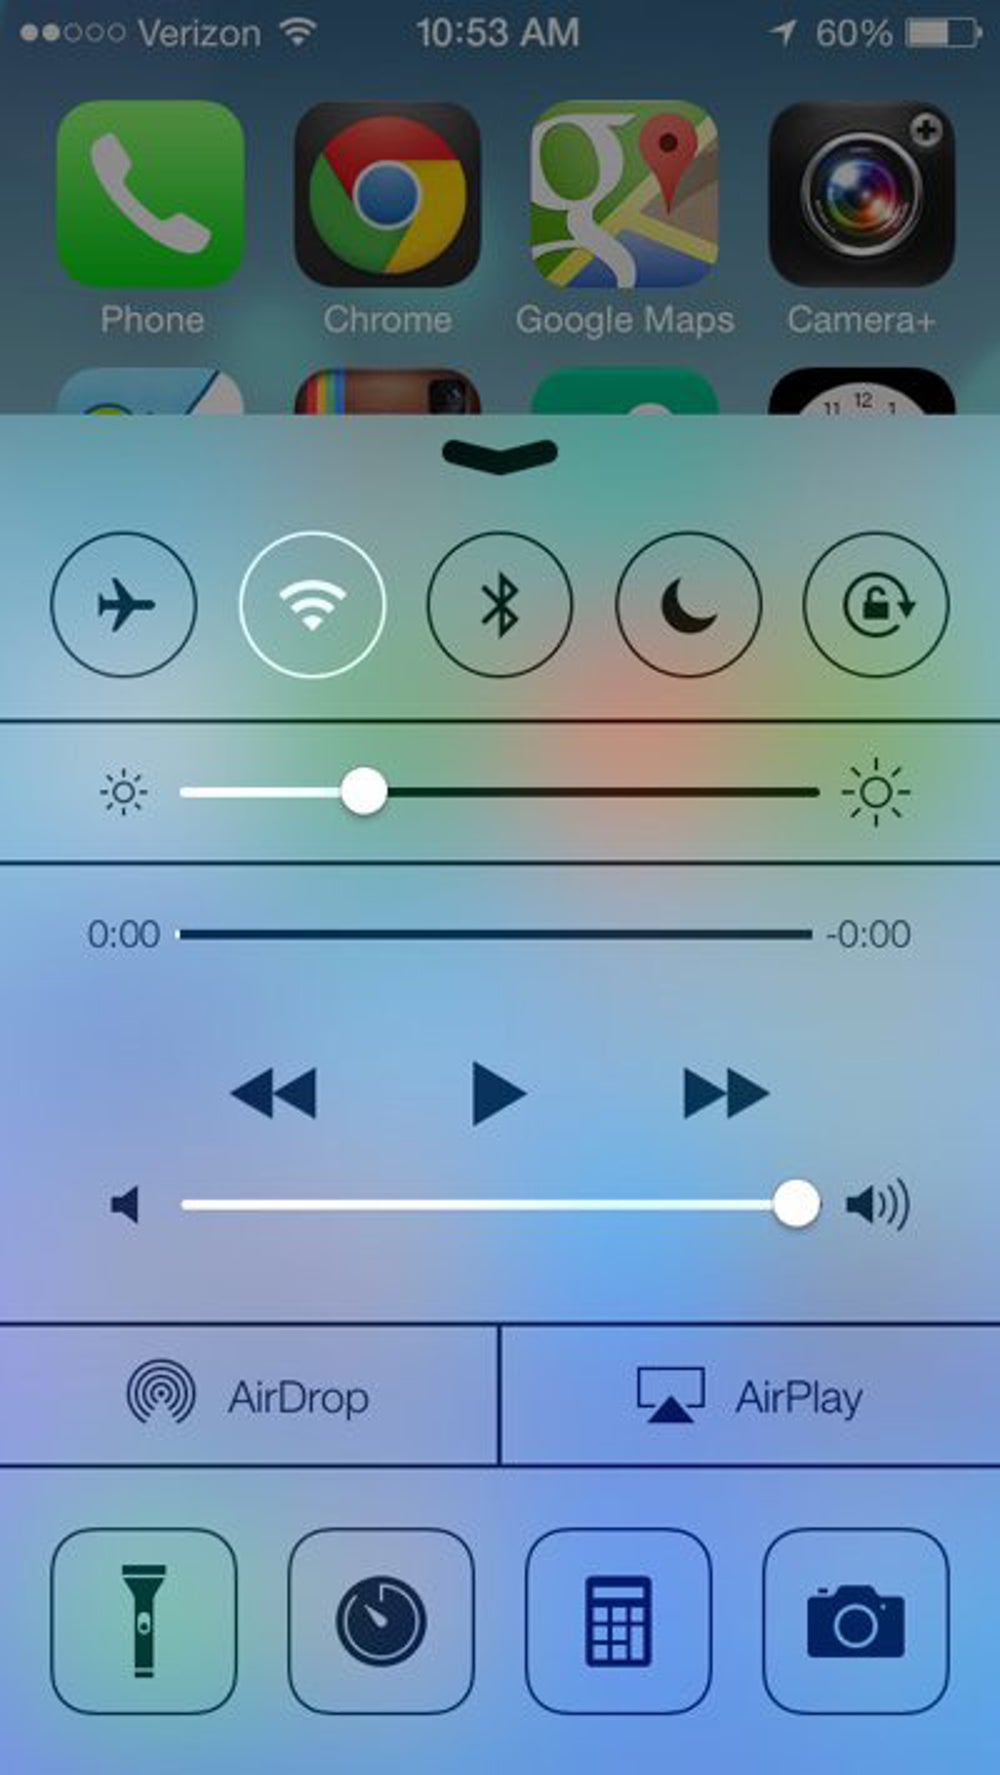 The Control Center pops up when you swipe up from the bottom of your screen. This panel lets you toggle settings for WiFi, Bluetooth, screen brightness, etc.